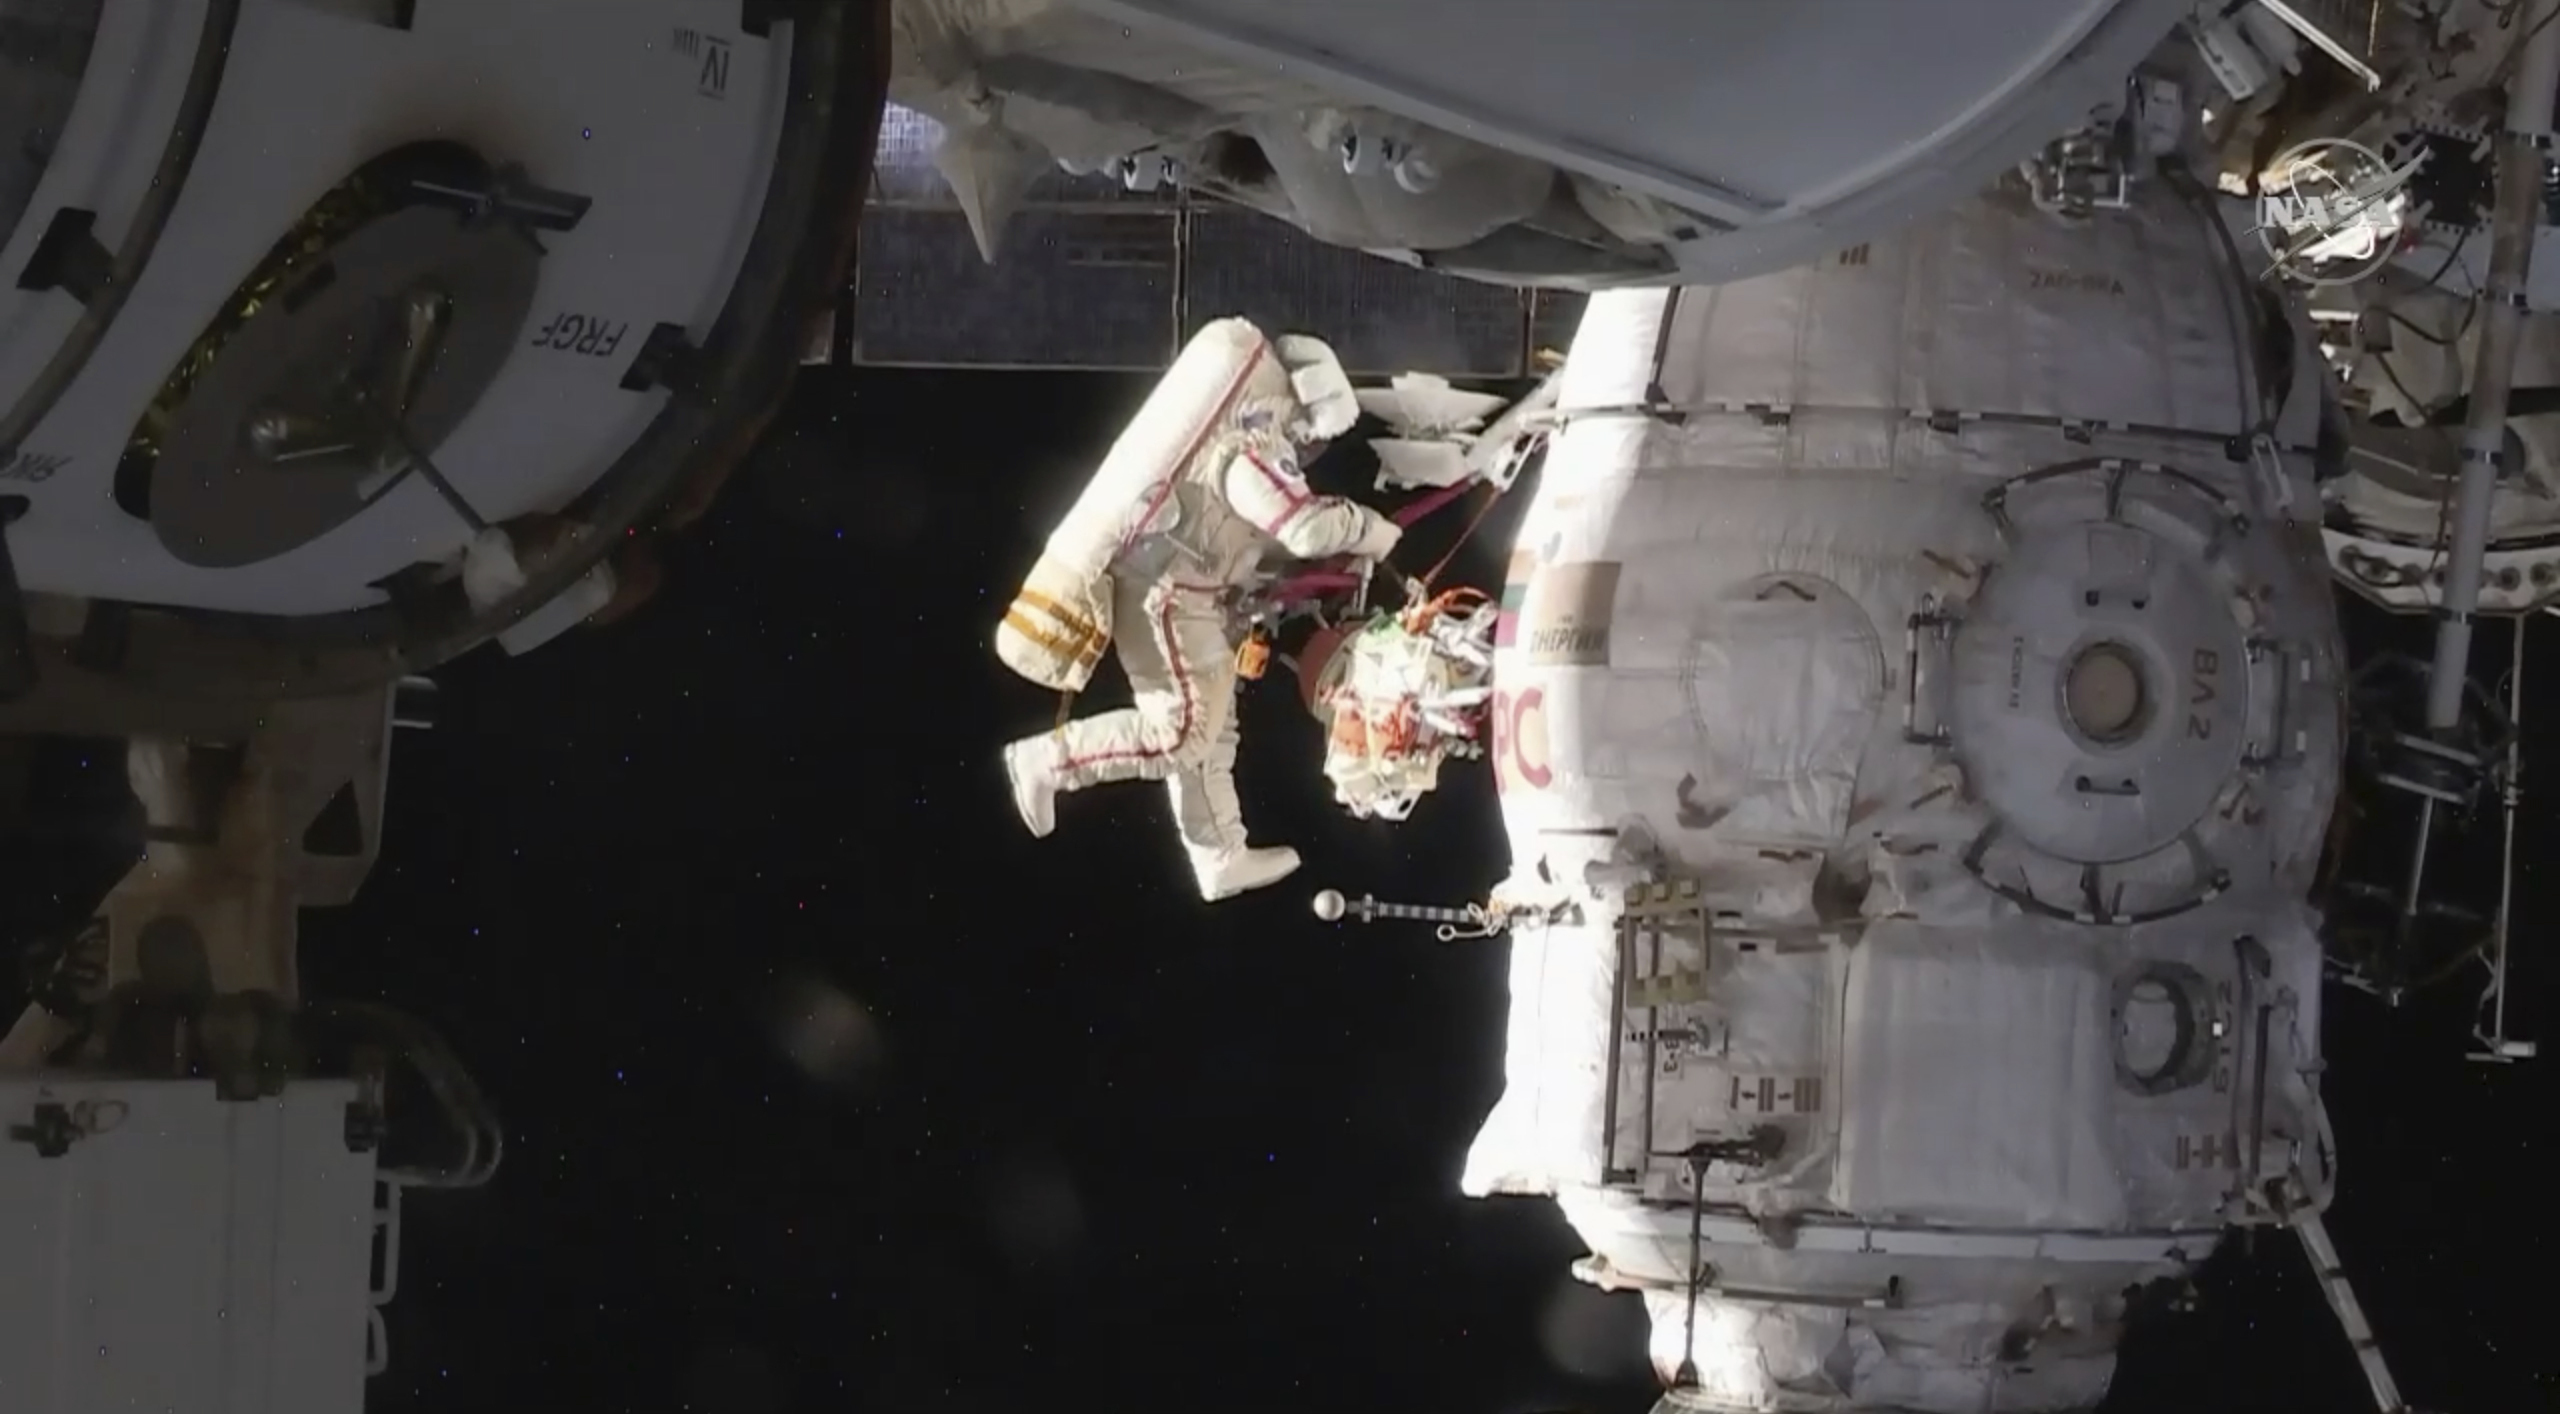 Spacewalking astronauts check site of capsule leak - 12/11/2018 3:09:10 PM